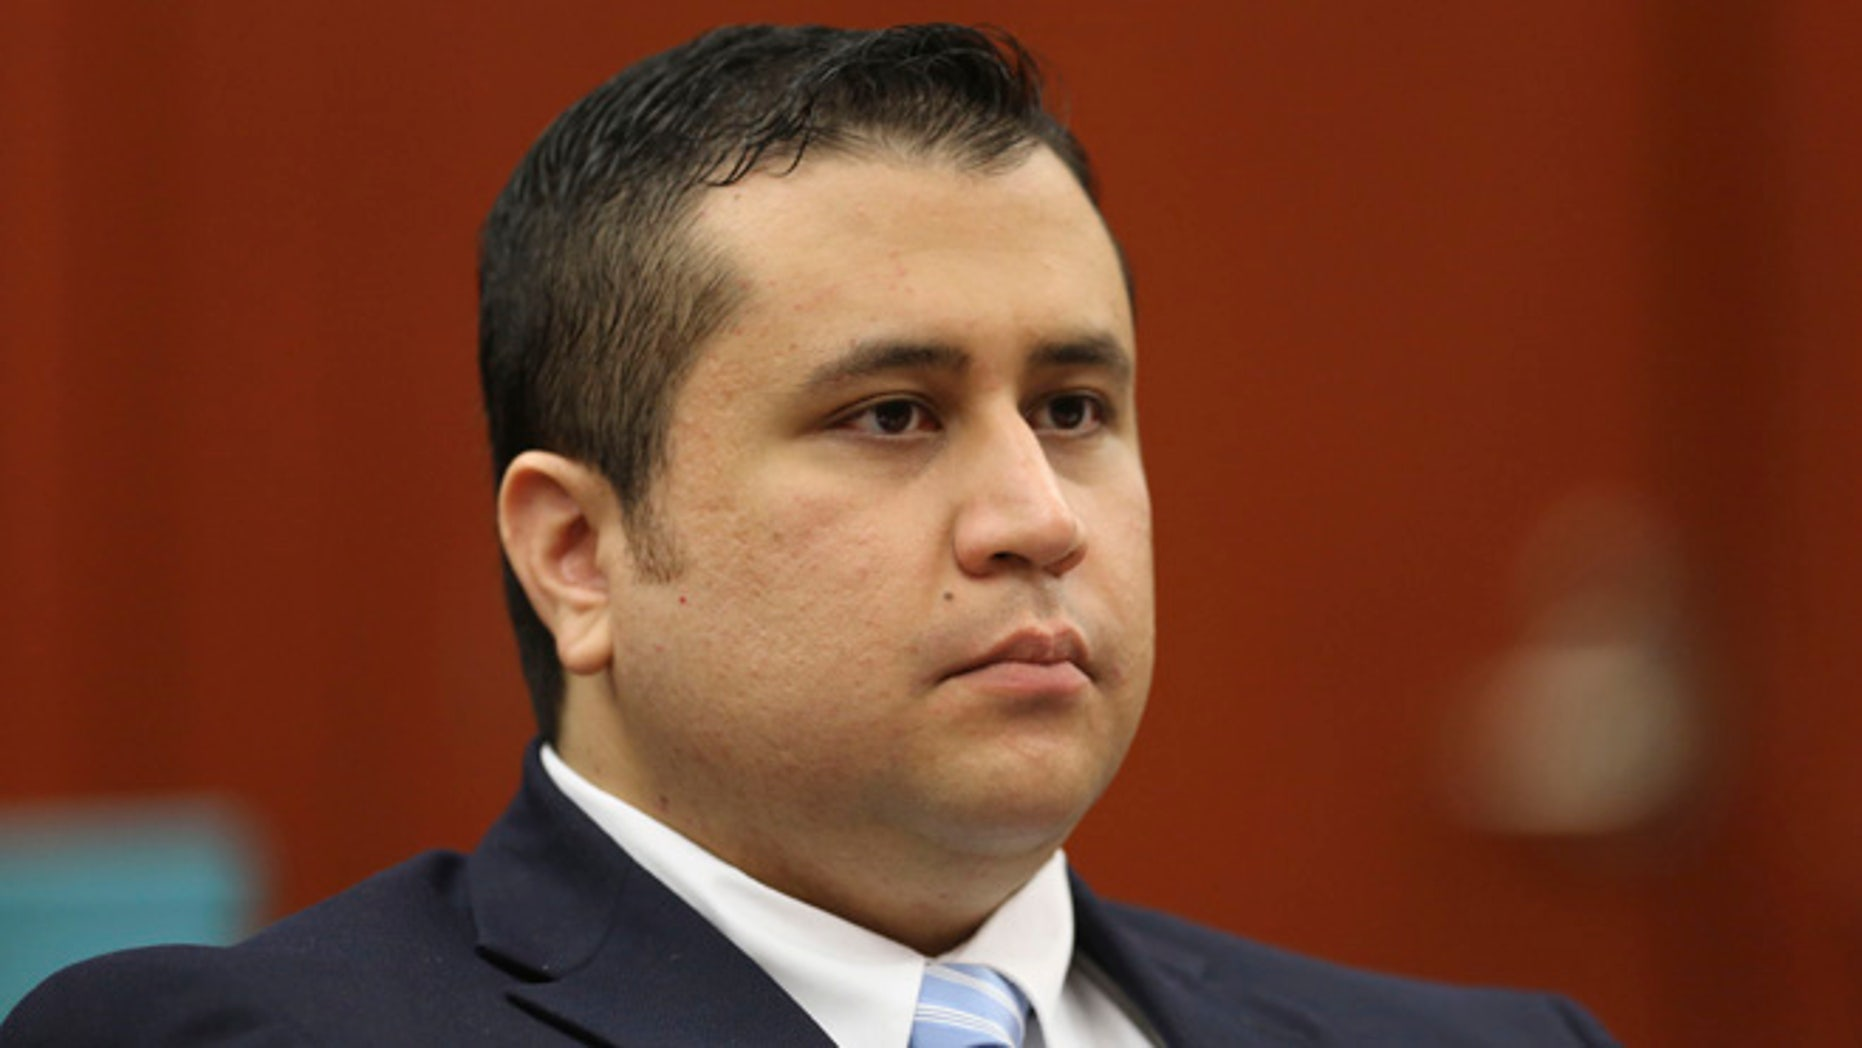 June 20, 2013: George Zimmerman listens as his defense counsel Mark O'Mara questions potential jurors during Zimmerman's trial in Seminole circuit court in Sanford, Fla.